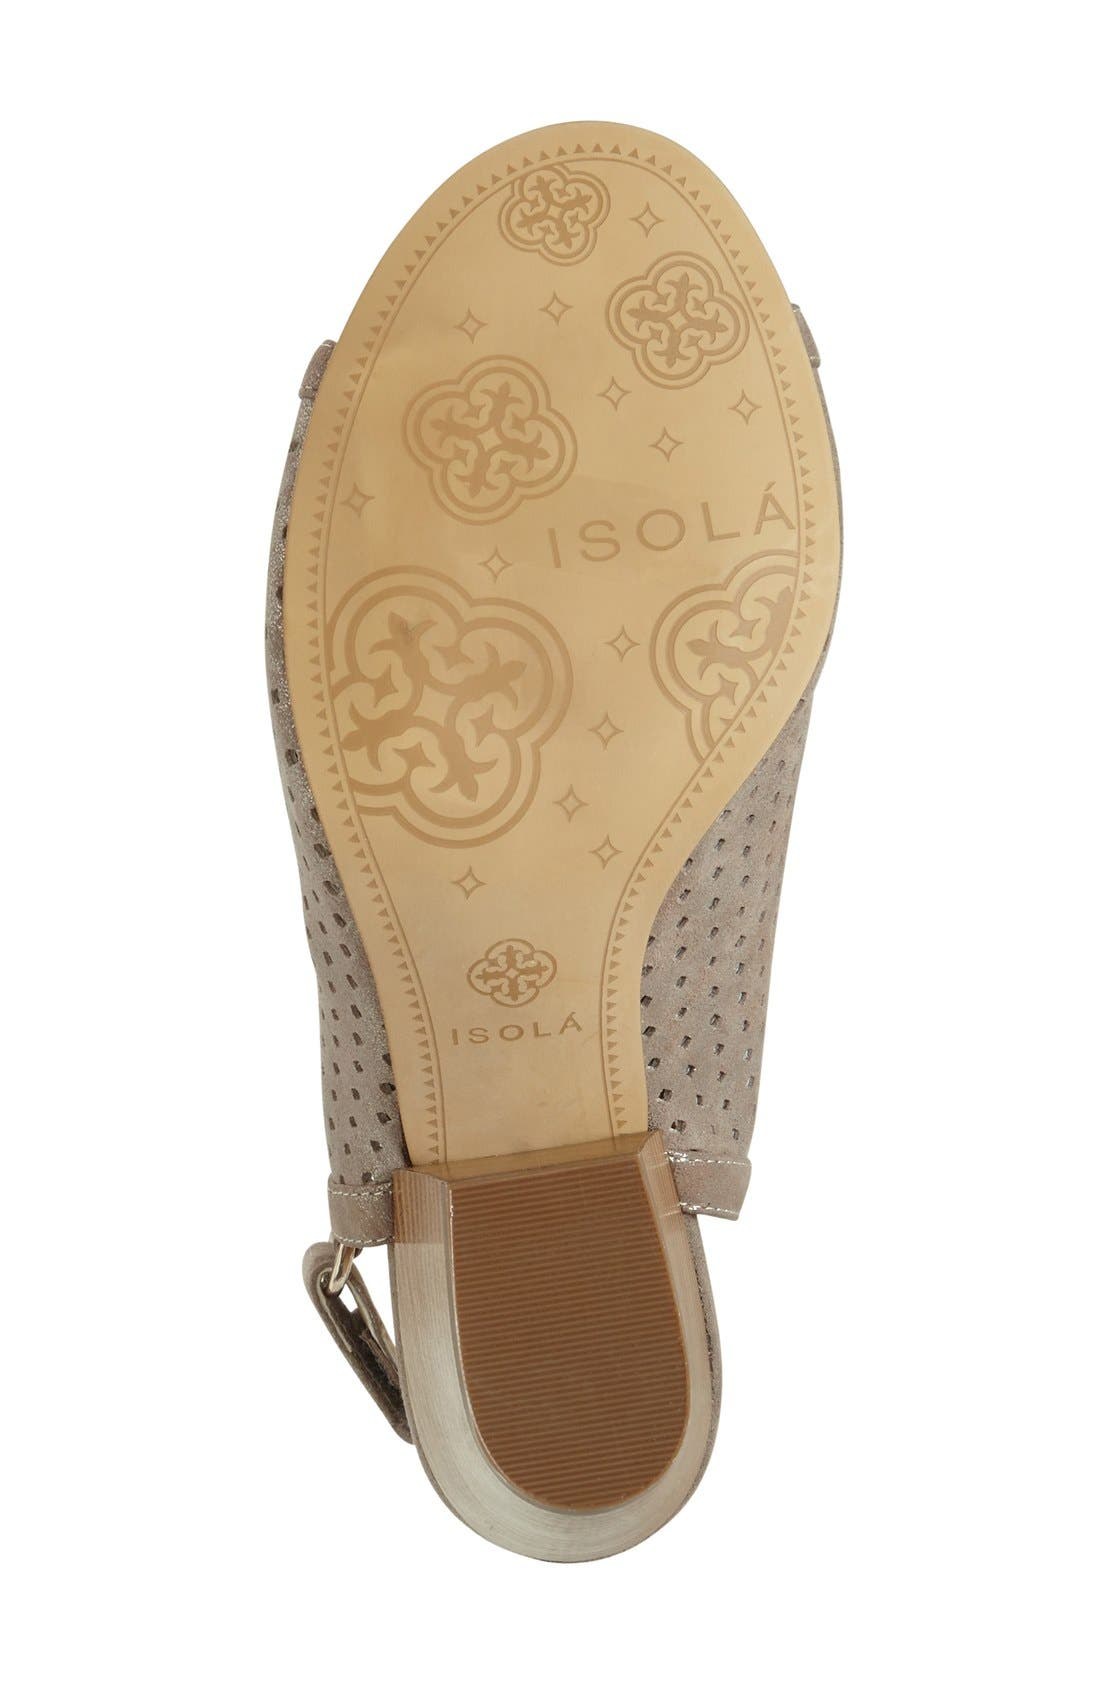 'Lora' Perforated Open-Toe Bootie Sandal,                             Alternate thumbnail 4, color,                             040